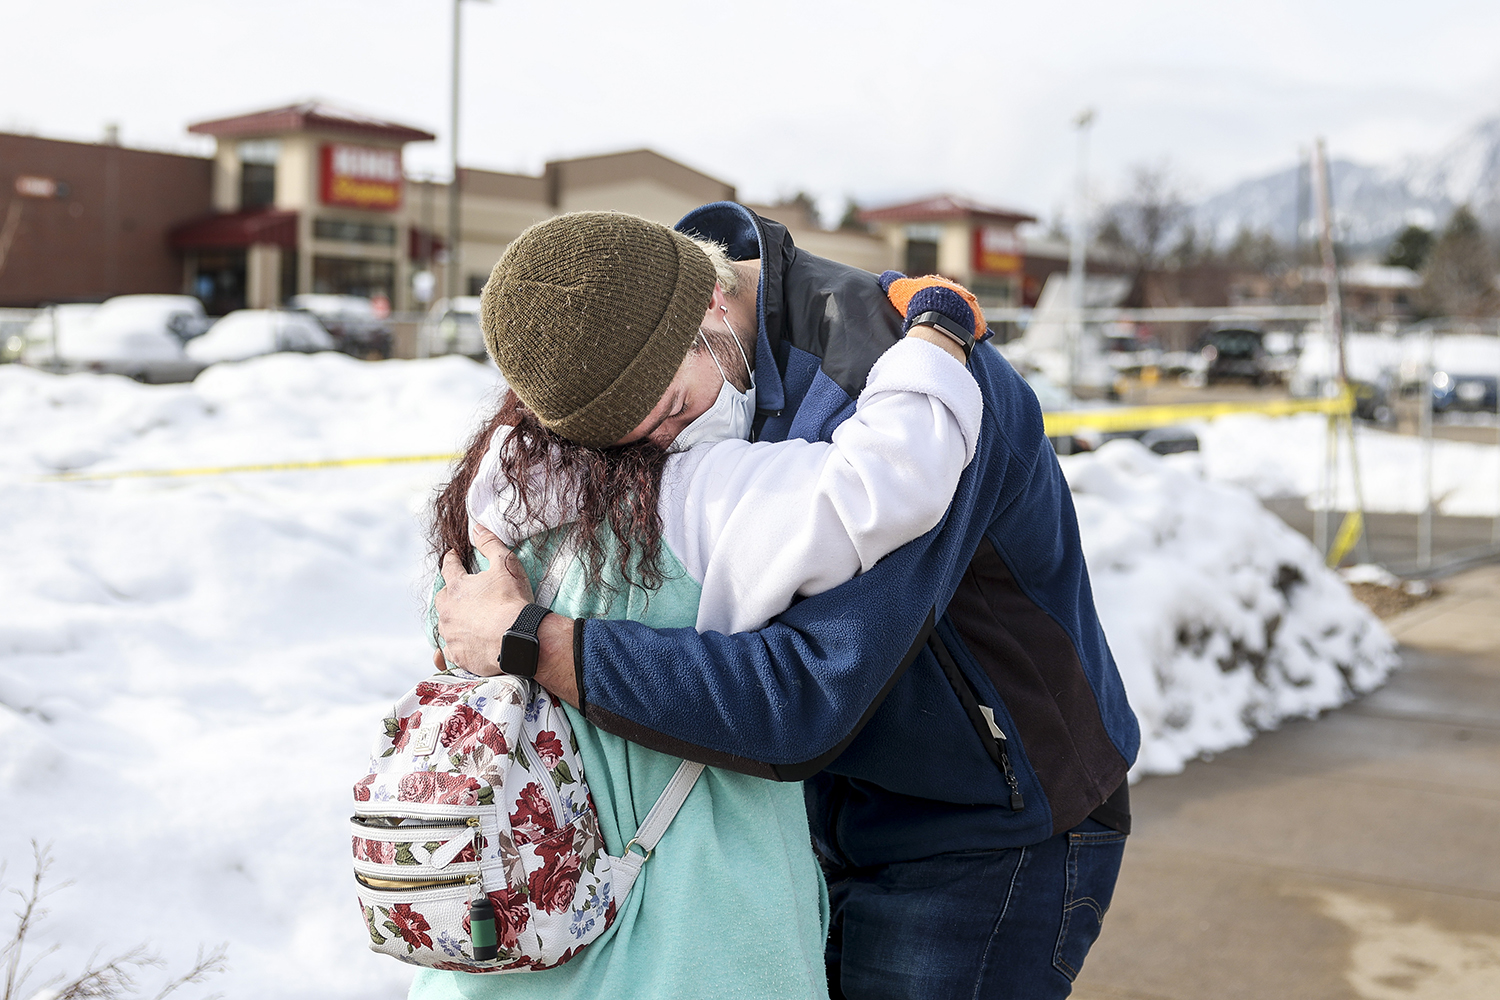 King Soopers employee Brenda Bustamante, left, hugs co-worker Logan Smith—who was inside the grocery store when a gunman opened fire, killing 10—at a makeshift memorial for the victims outside the grocery store in Boulder, Colorado, on March 24. Michael Ciaglo/Getty Images